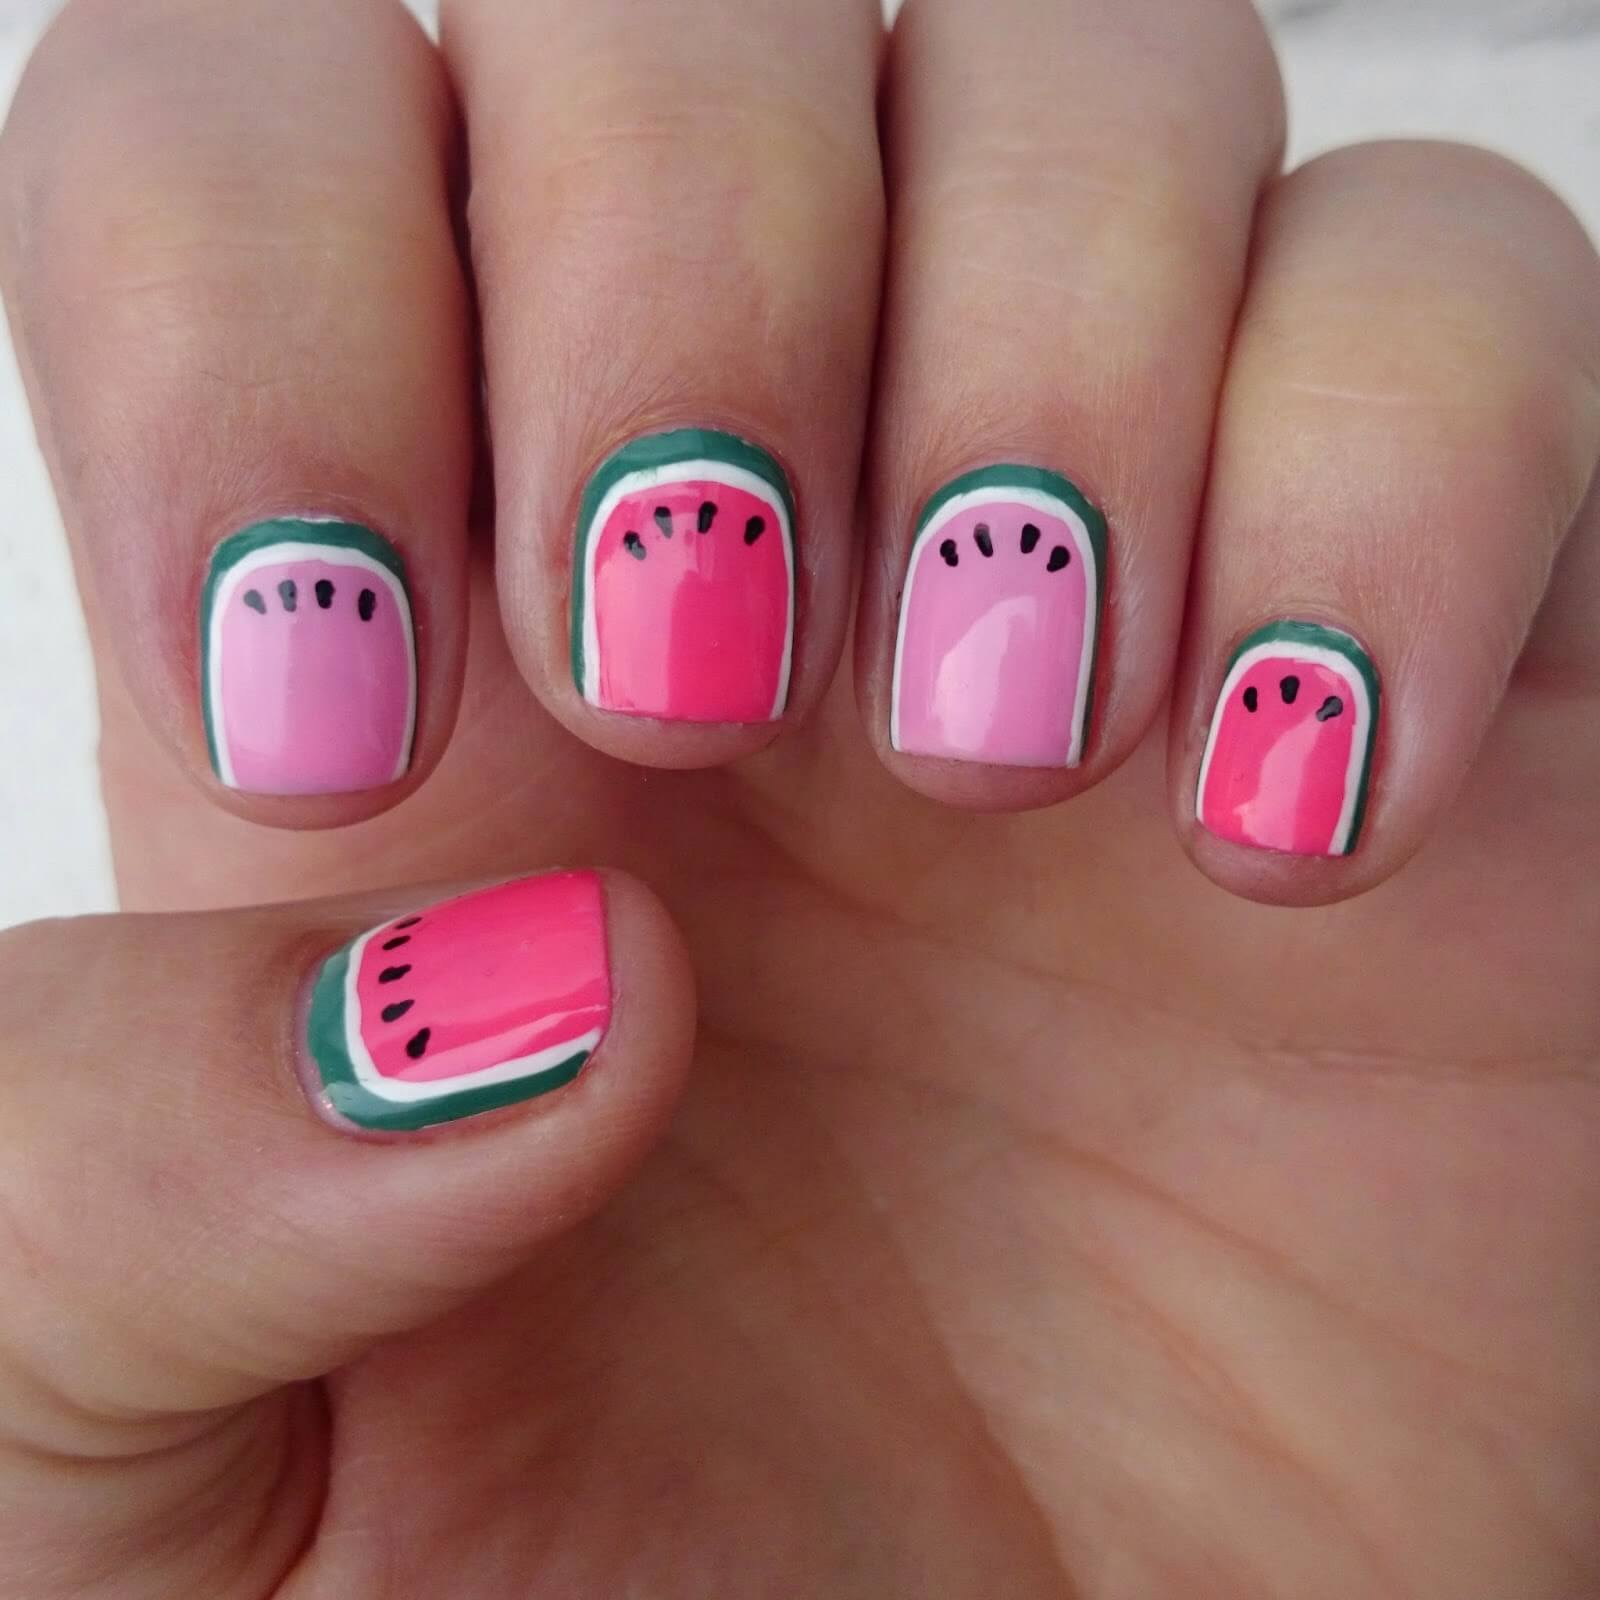 Watermelon Accent nail designs 2018 – Live Enhanced